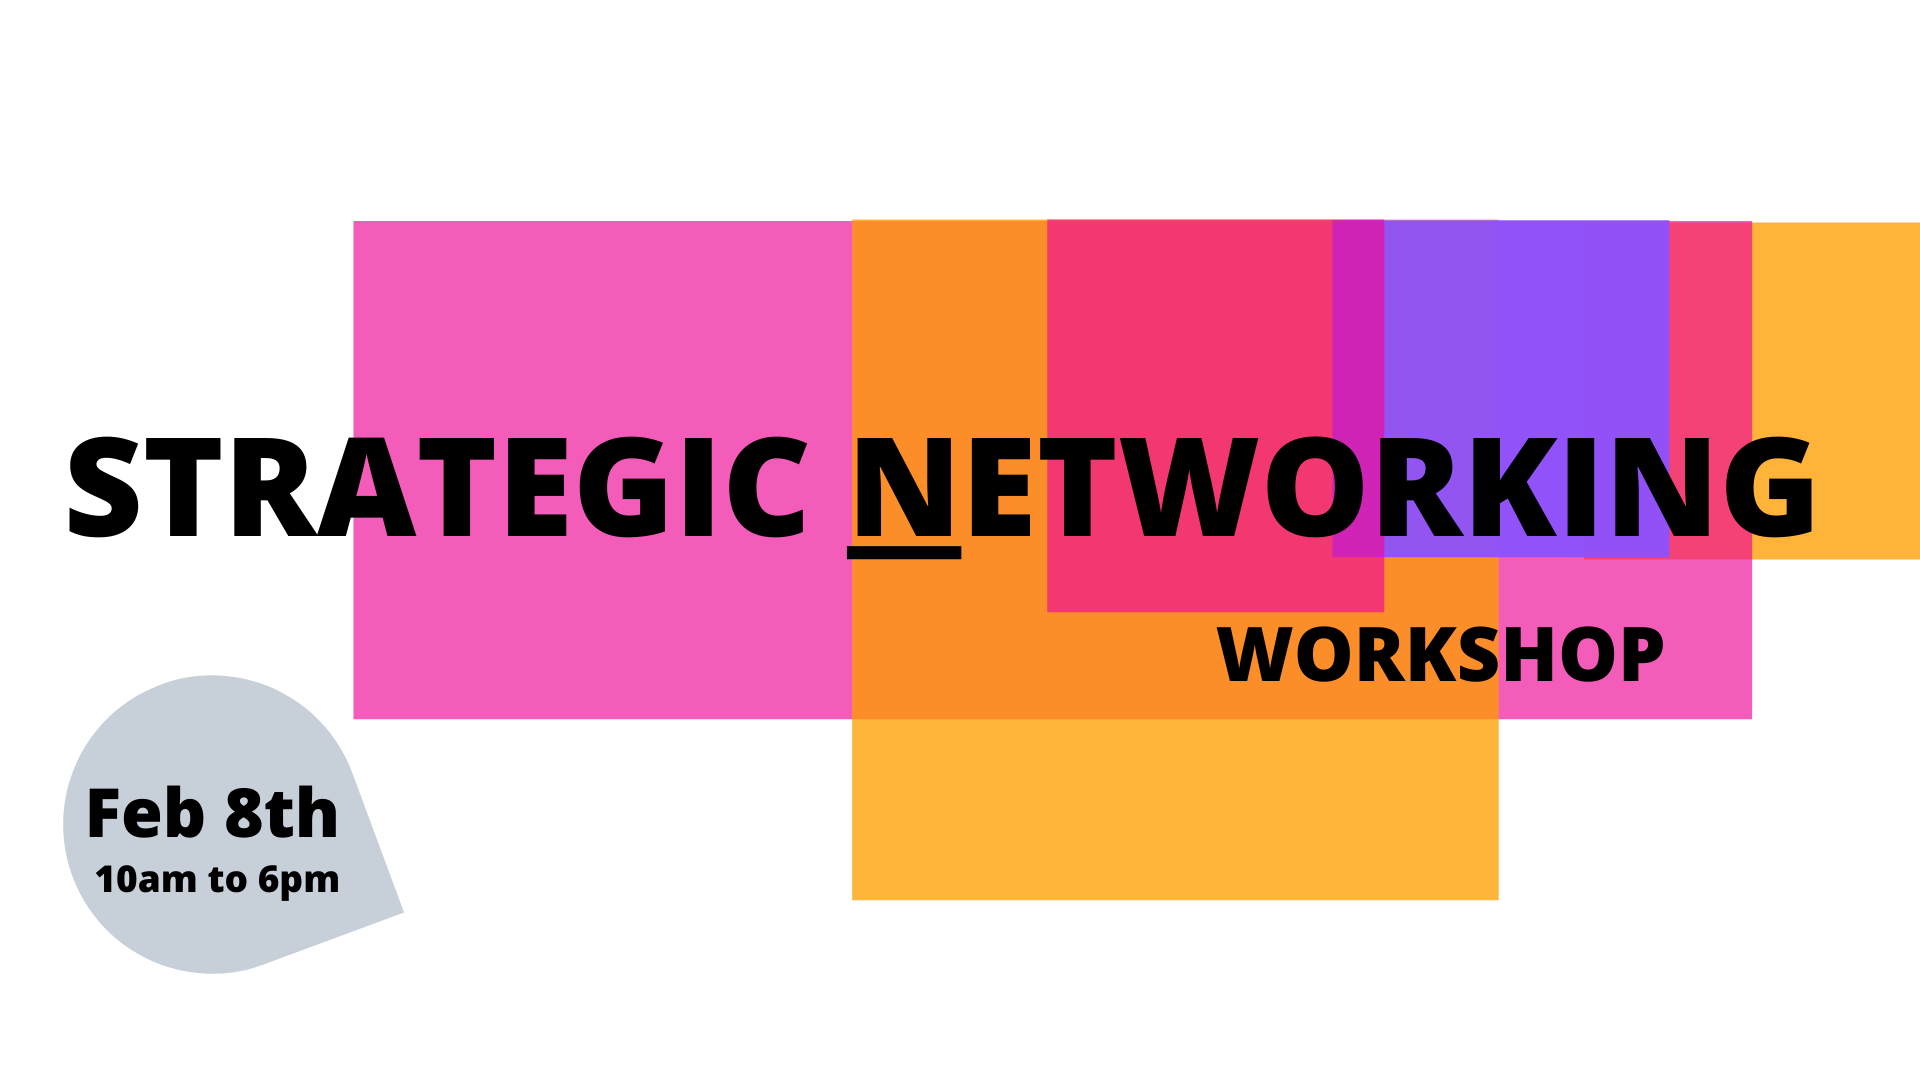 Strategic Networking Workshop